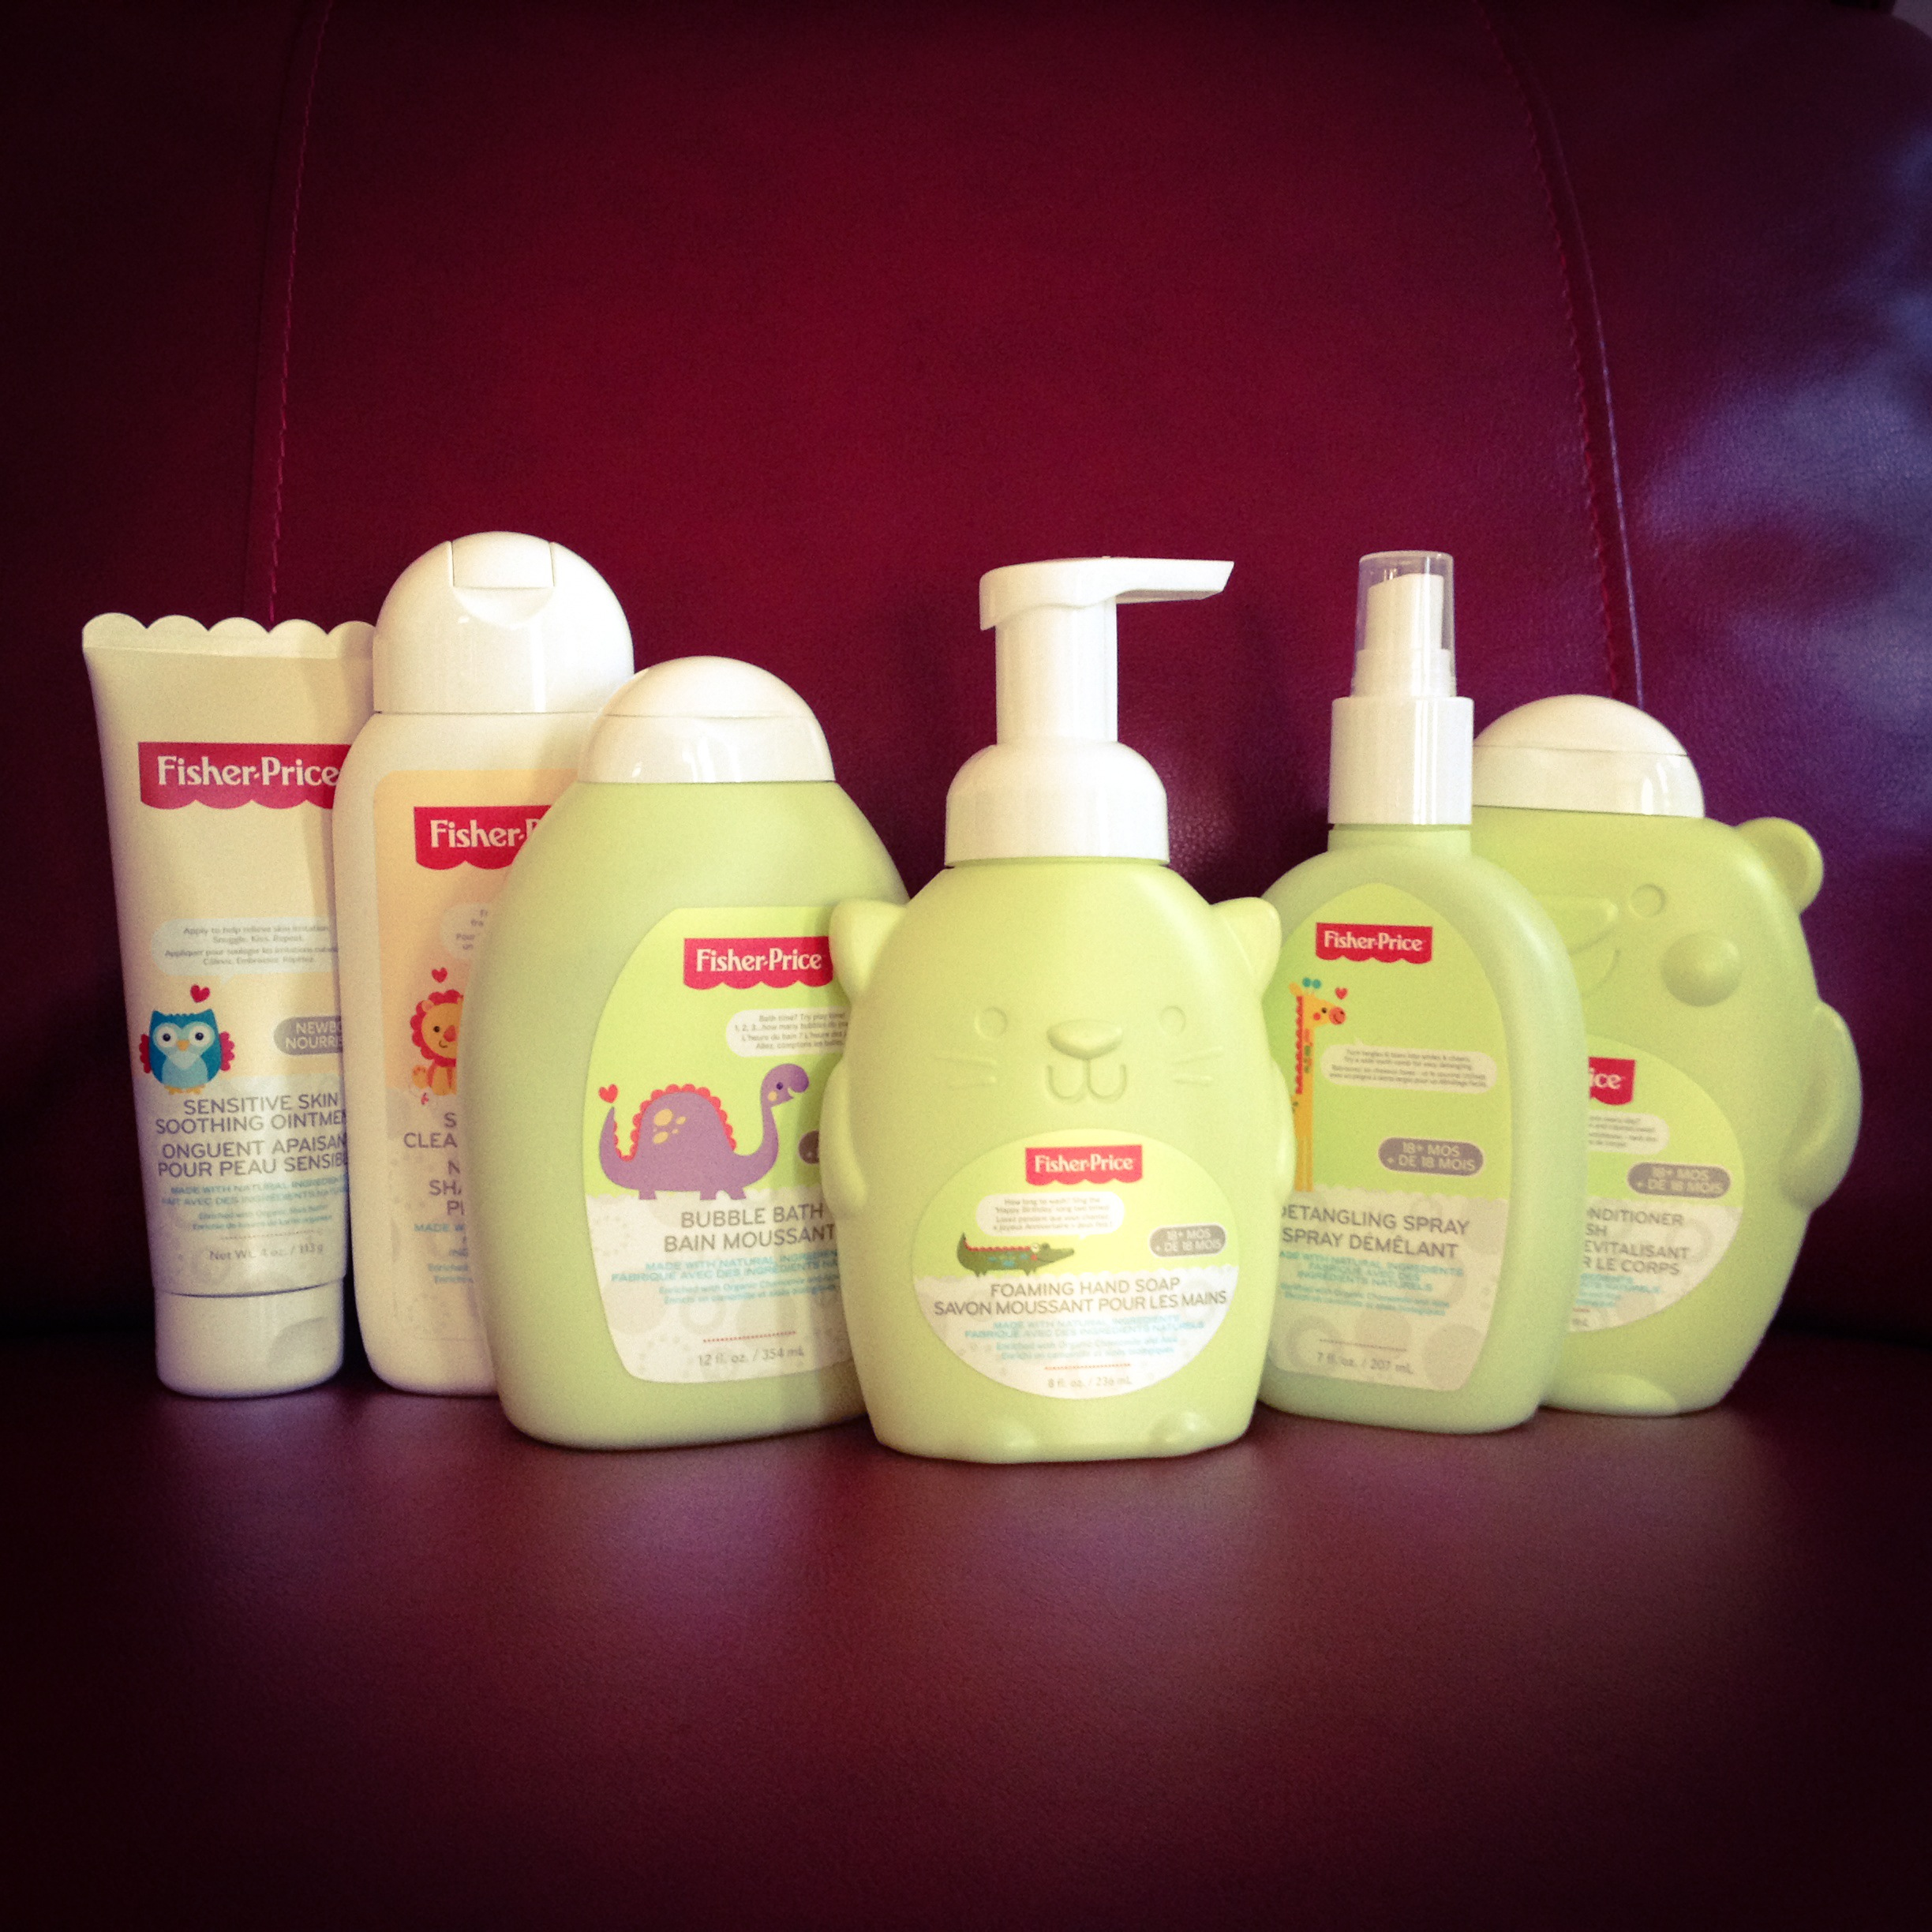 Fisher-Price Bath & Body Product Line